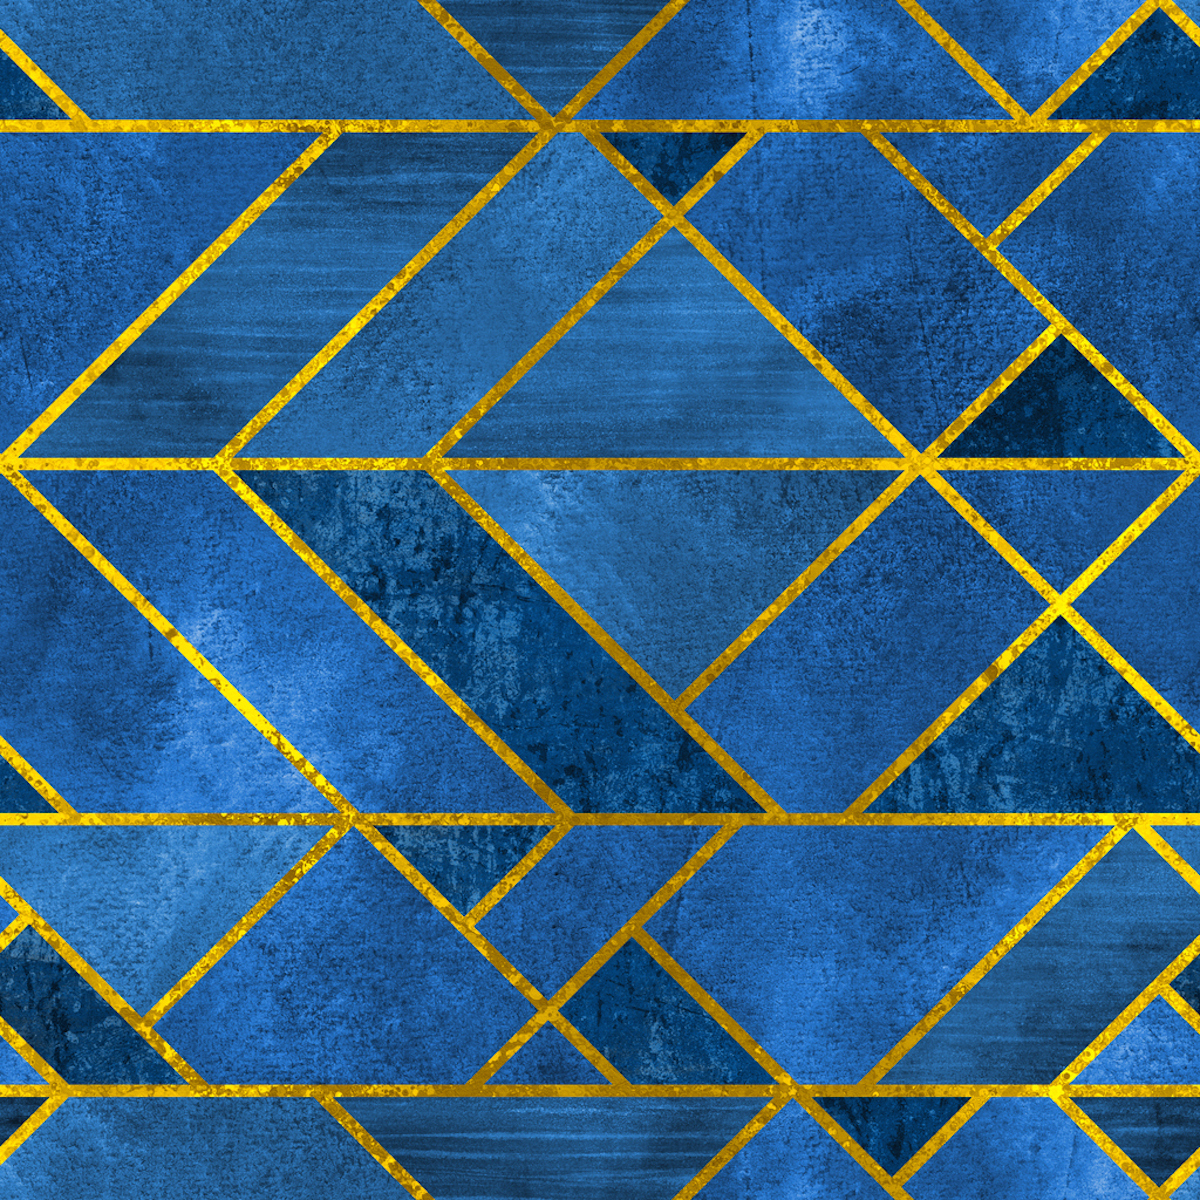 Grunge and gold pattern seamless texture, art deco background, 3d illustration